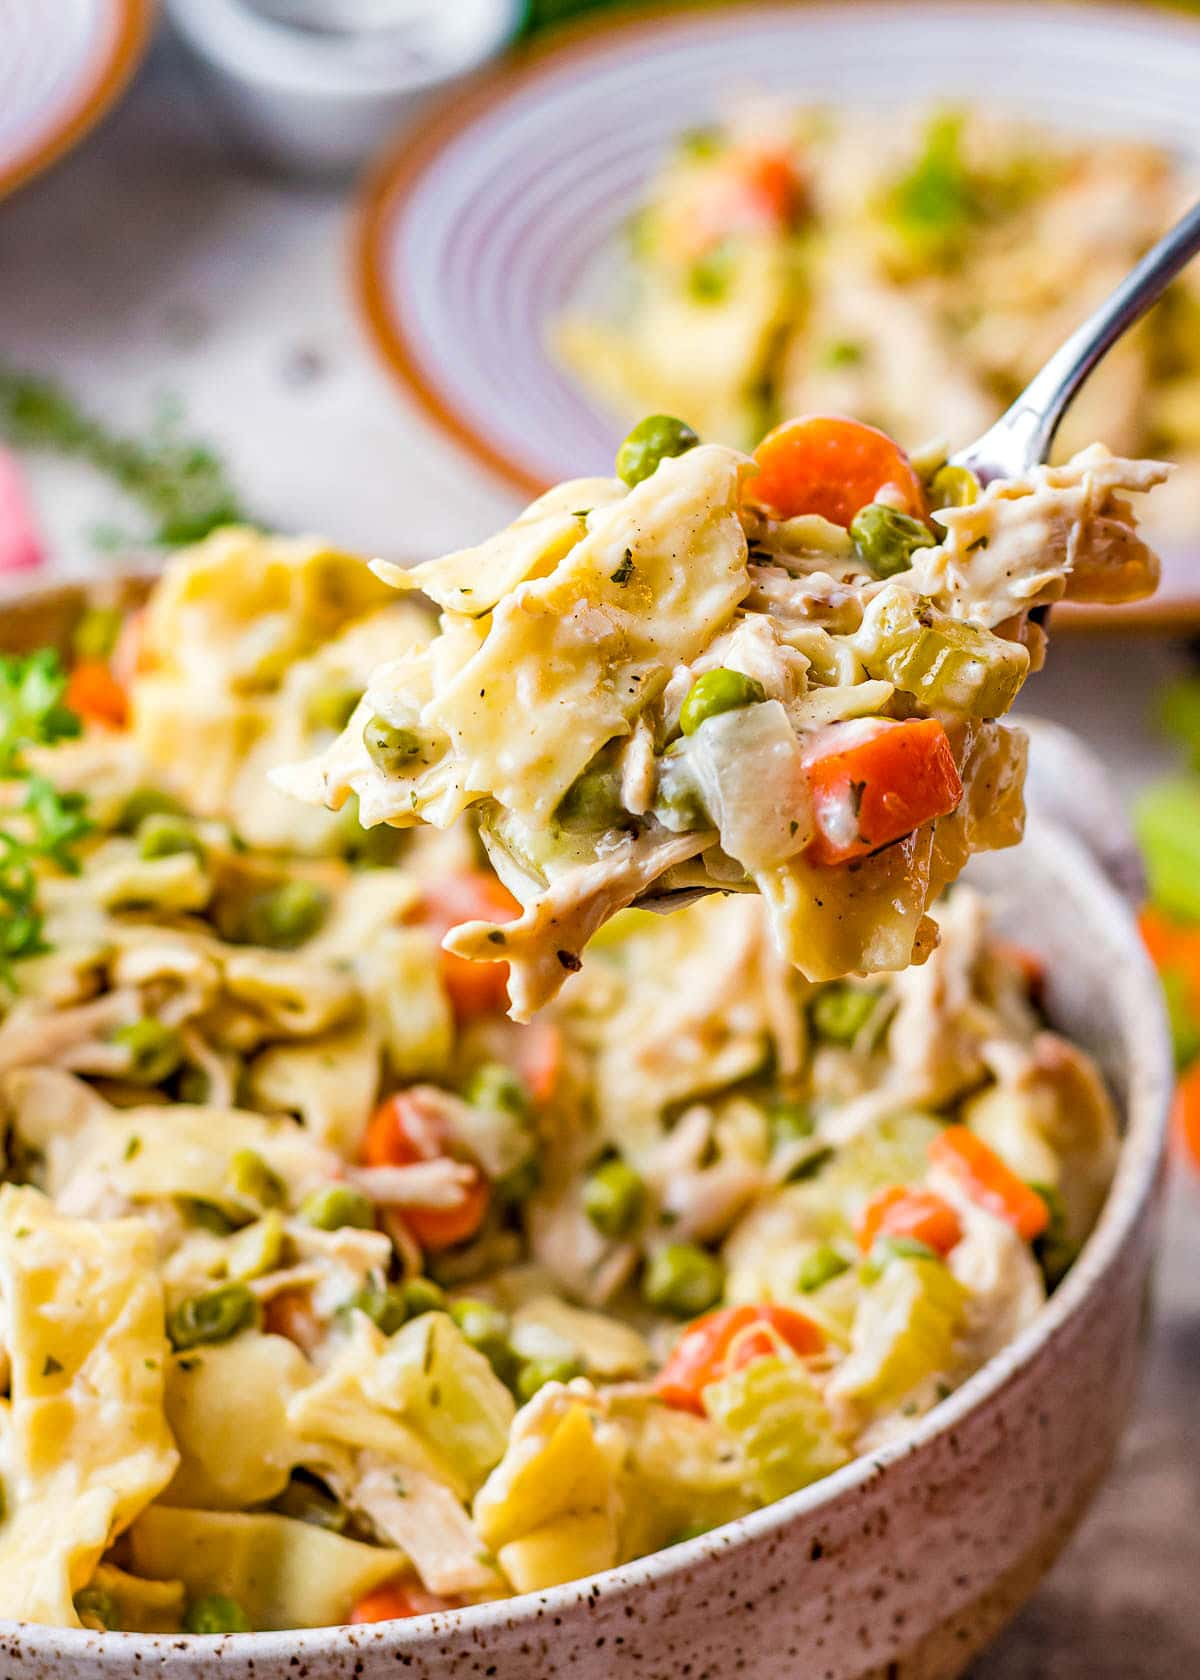 spoonful of chicken noodles dish being held up over the serving bowl.g